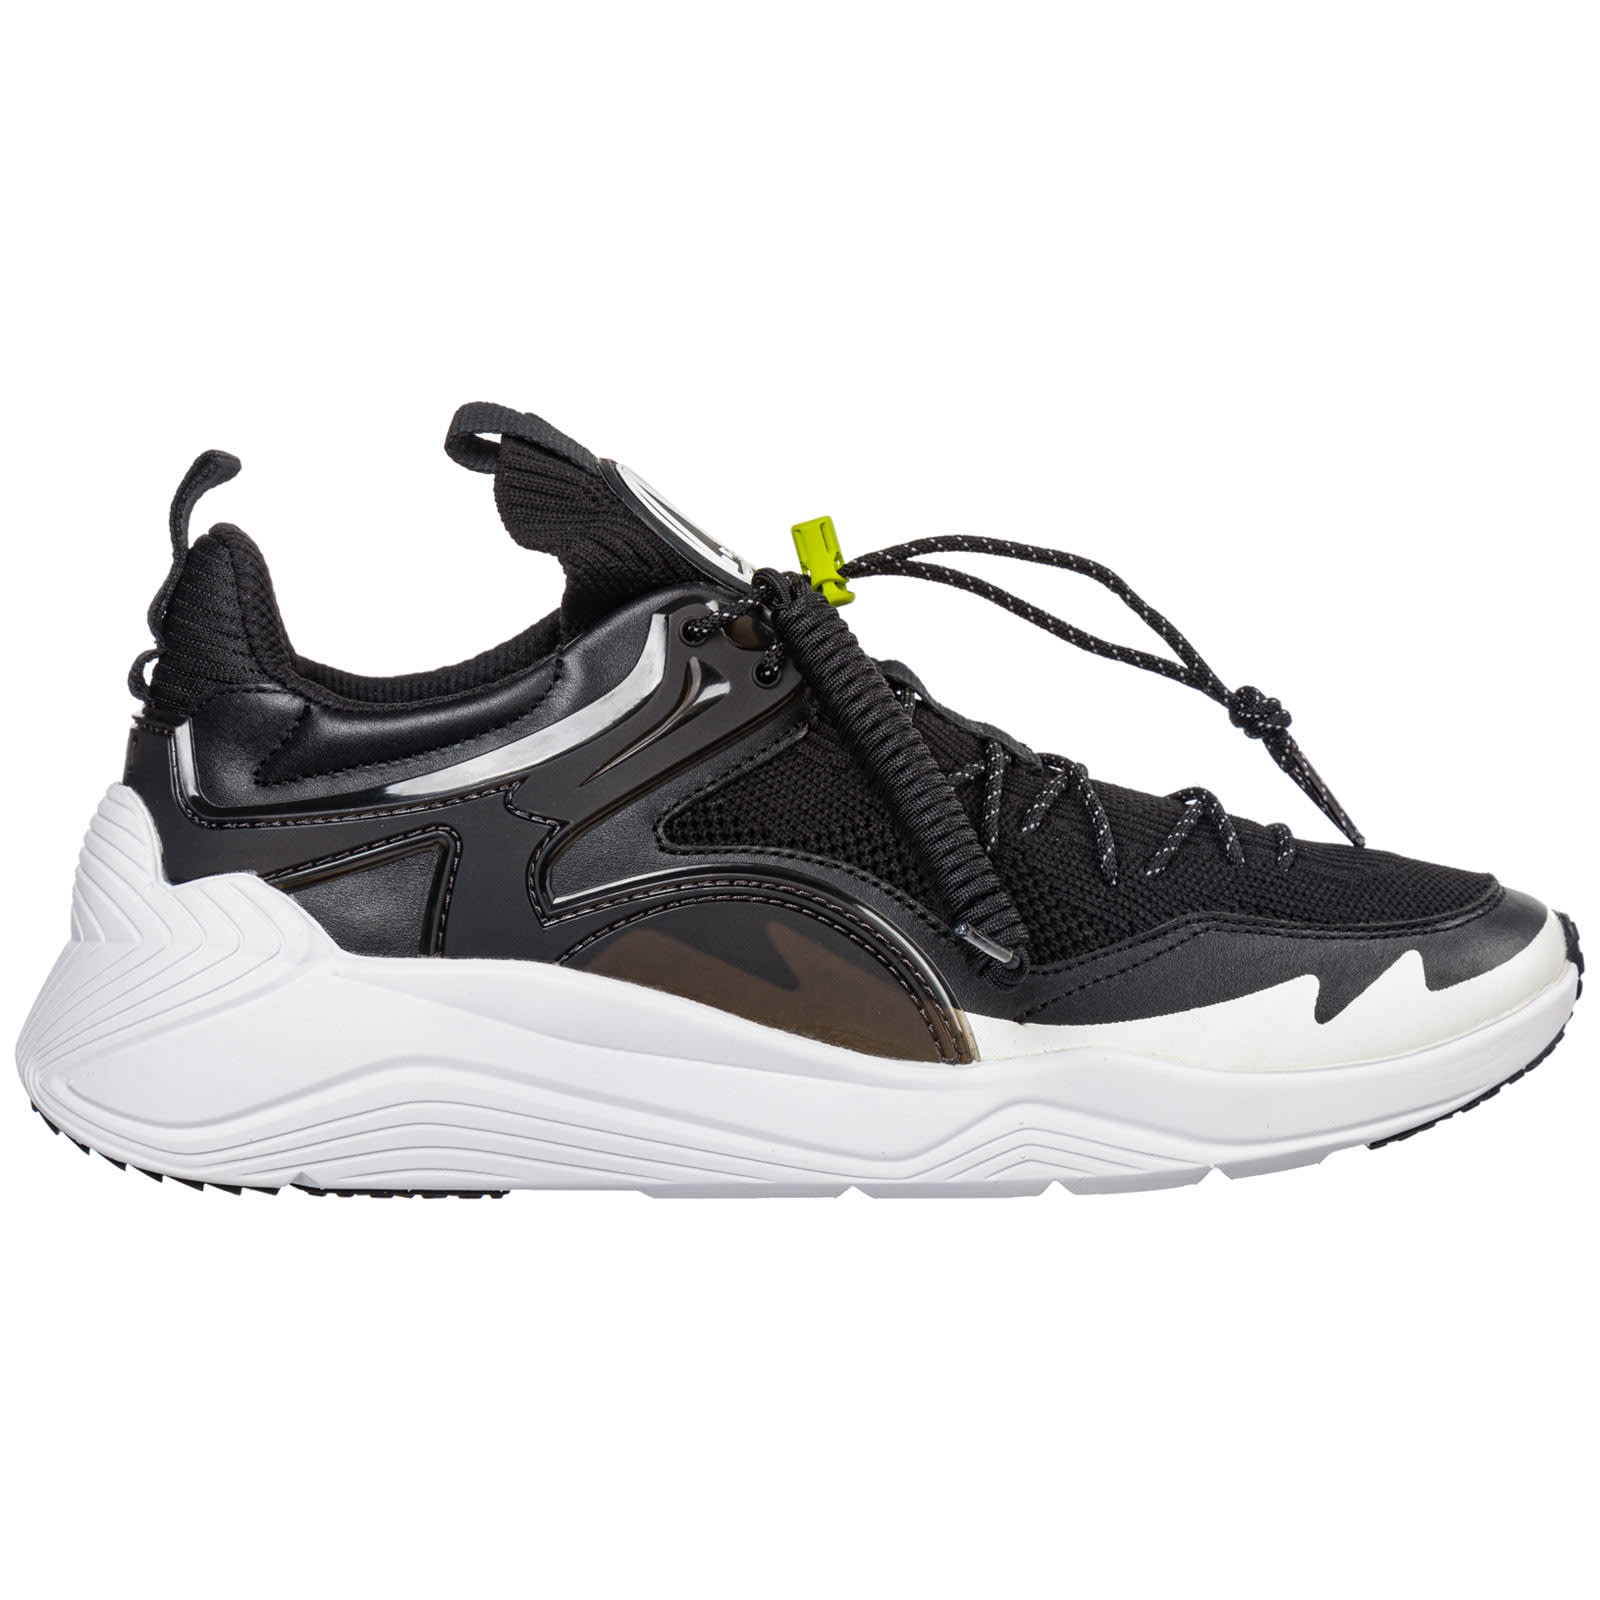 buy online a7dd5 26951 McQ Alexander McQueen Shoes Trainers Sneakers Ghishiki 2.0